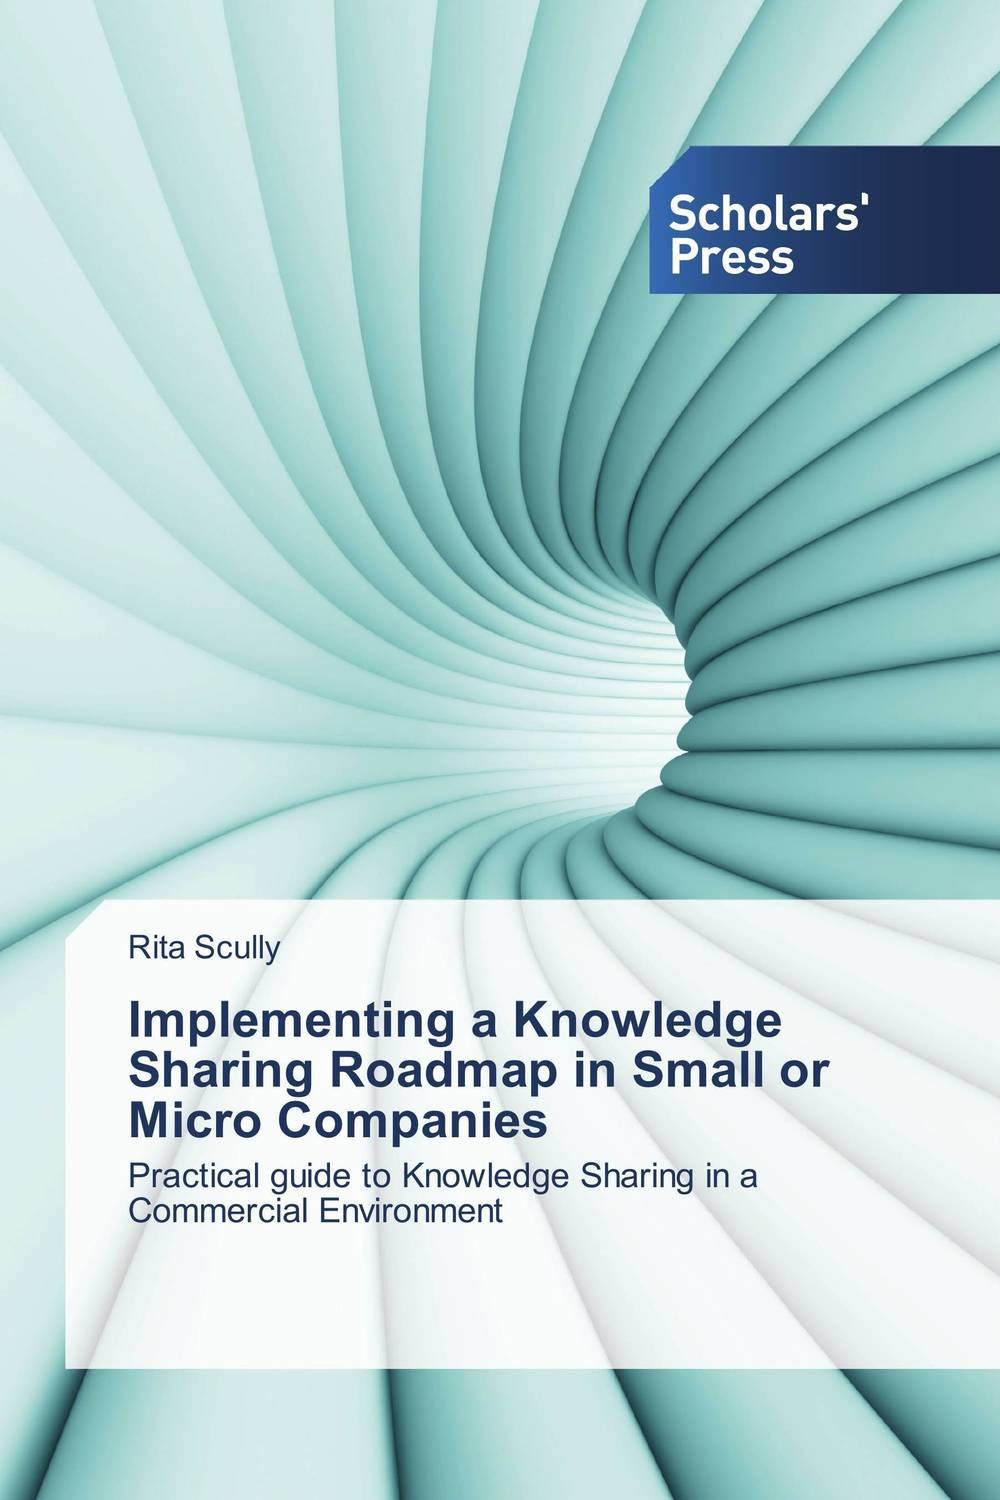 Implementing a Knowledge Sharing Roadmap in Small or Micro Companies roadmap to nigerian democracy issues and challenges